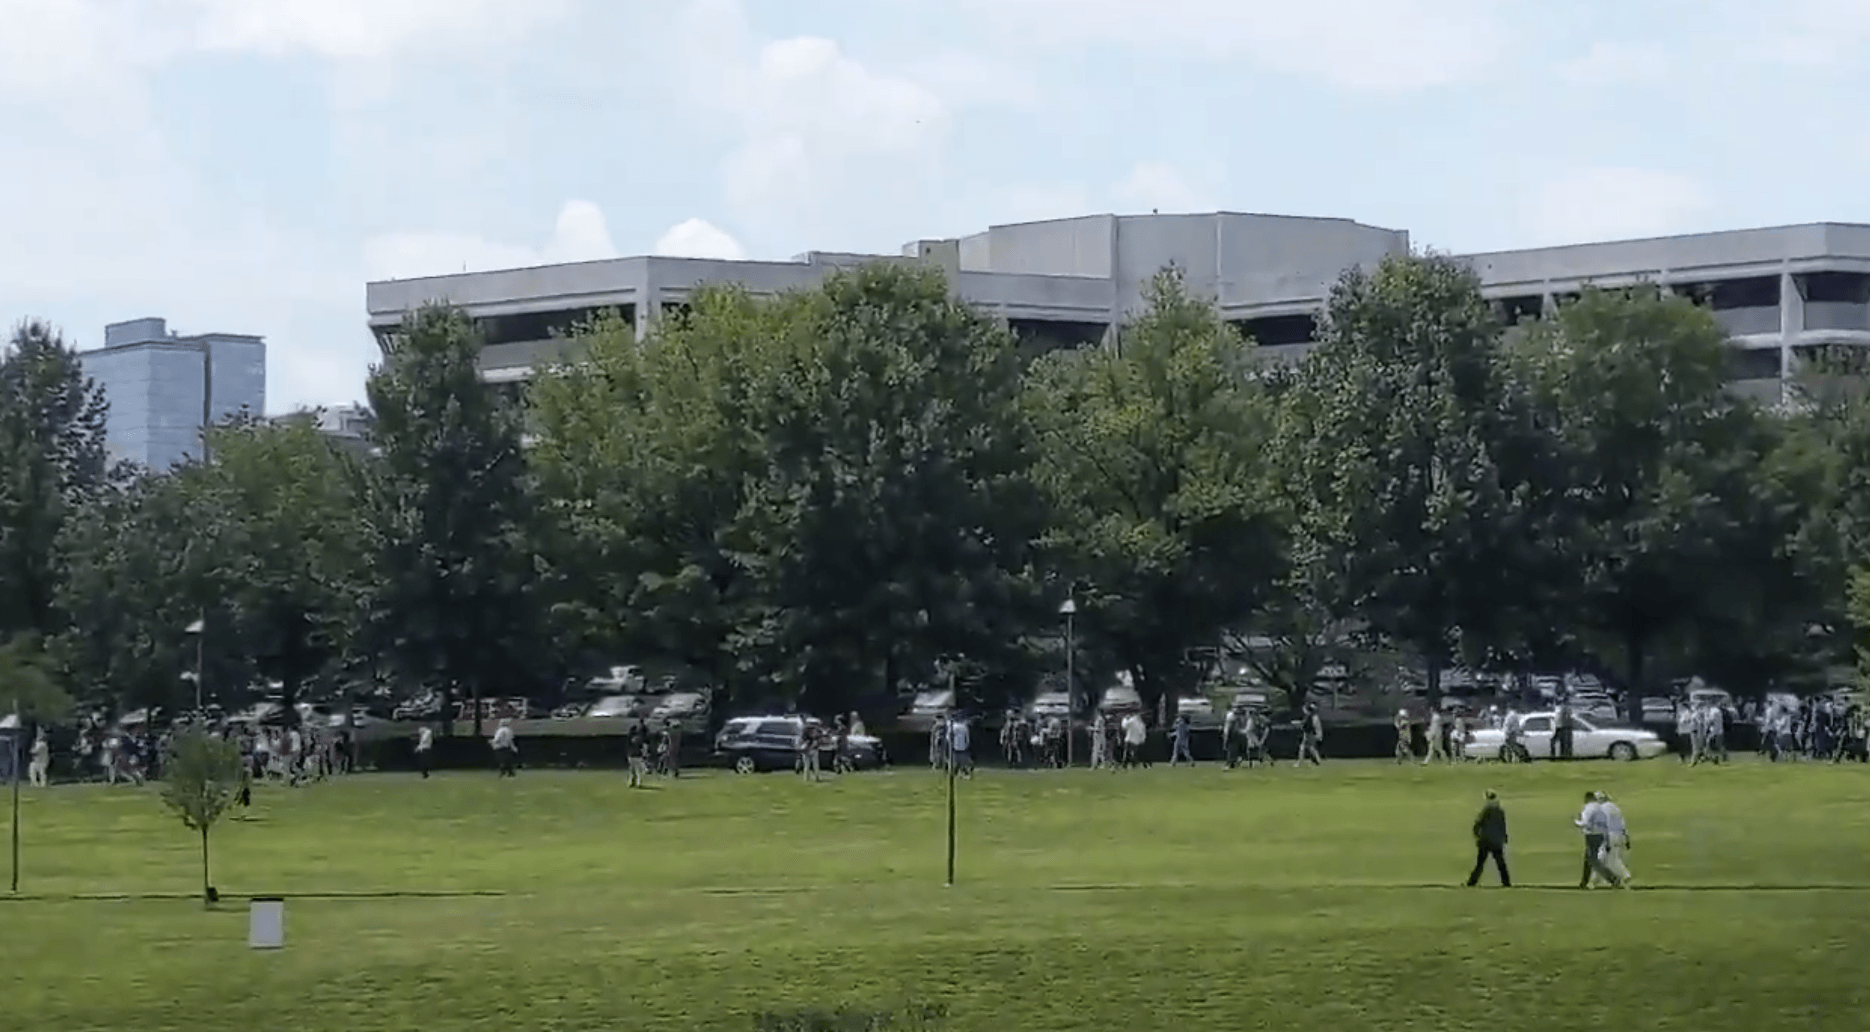 usa today headquarters shooting